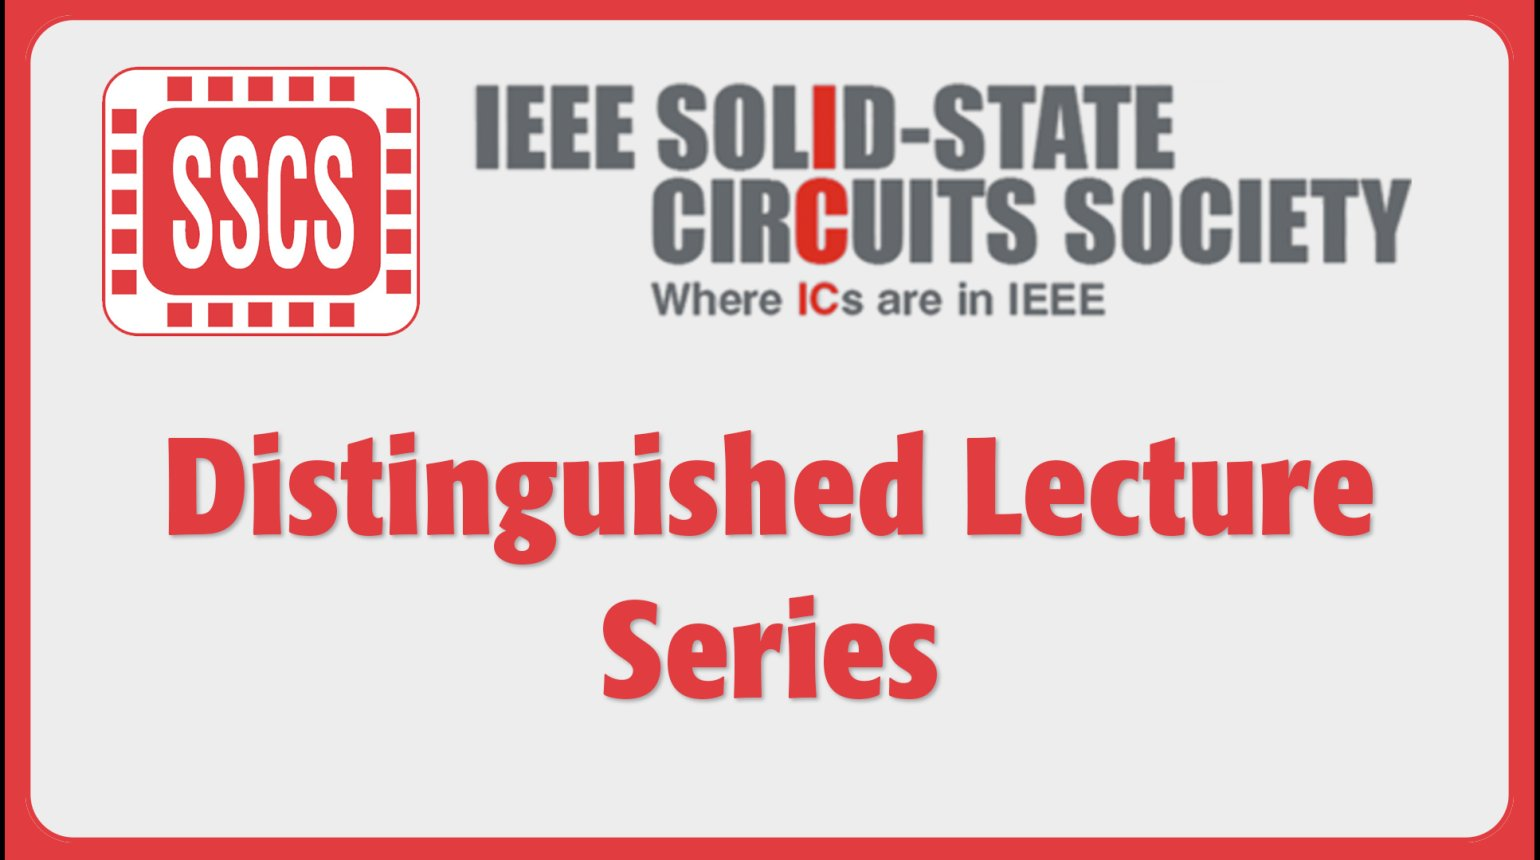 SSCS Distinguished Lecture Series